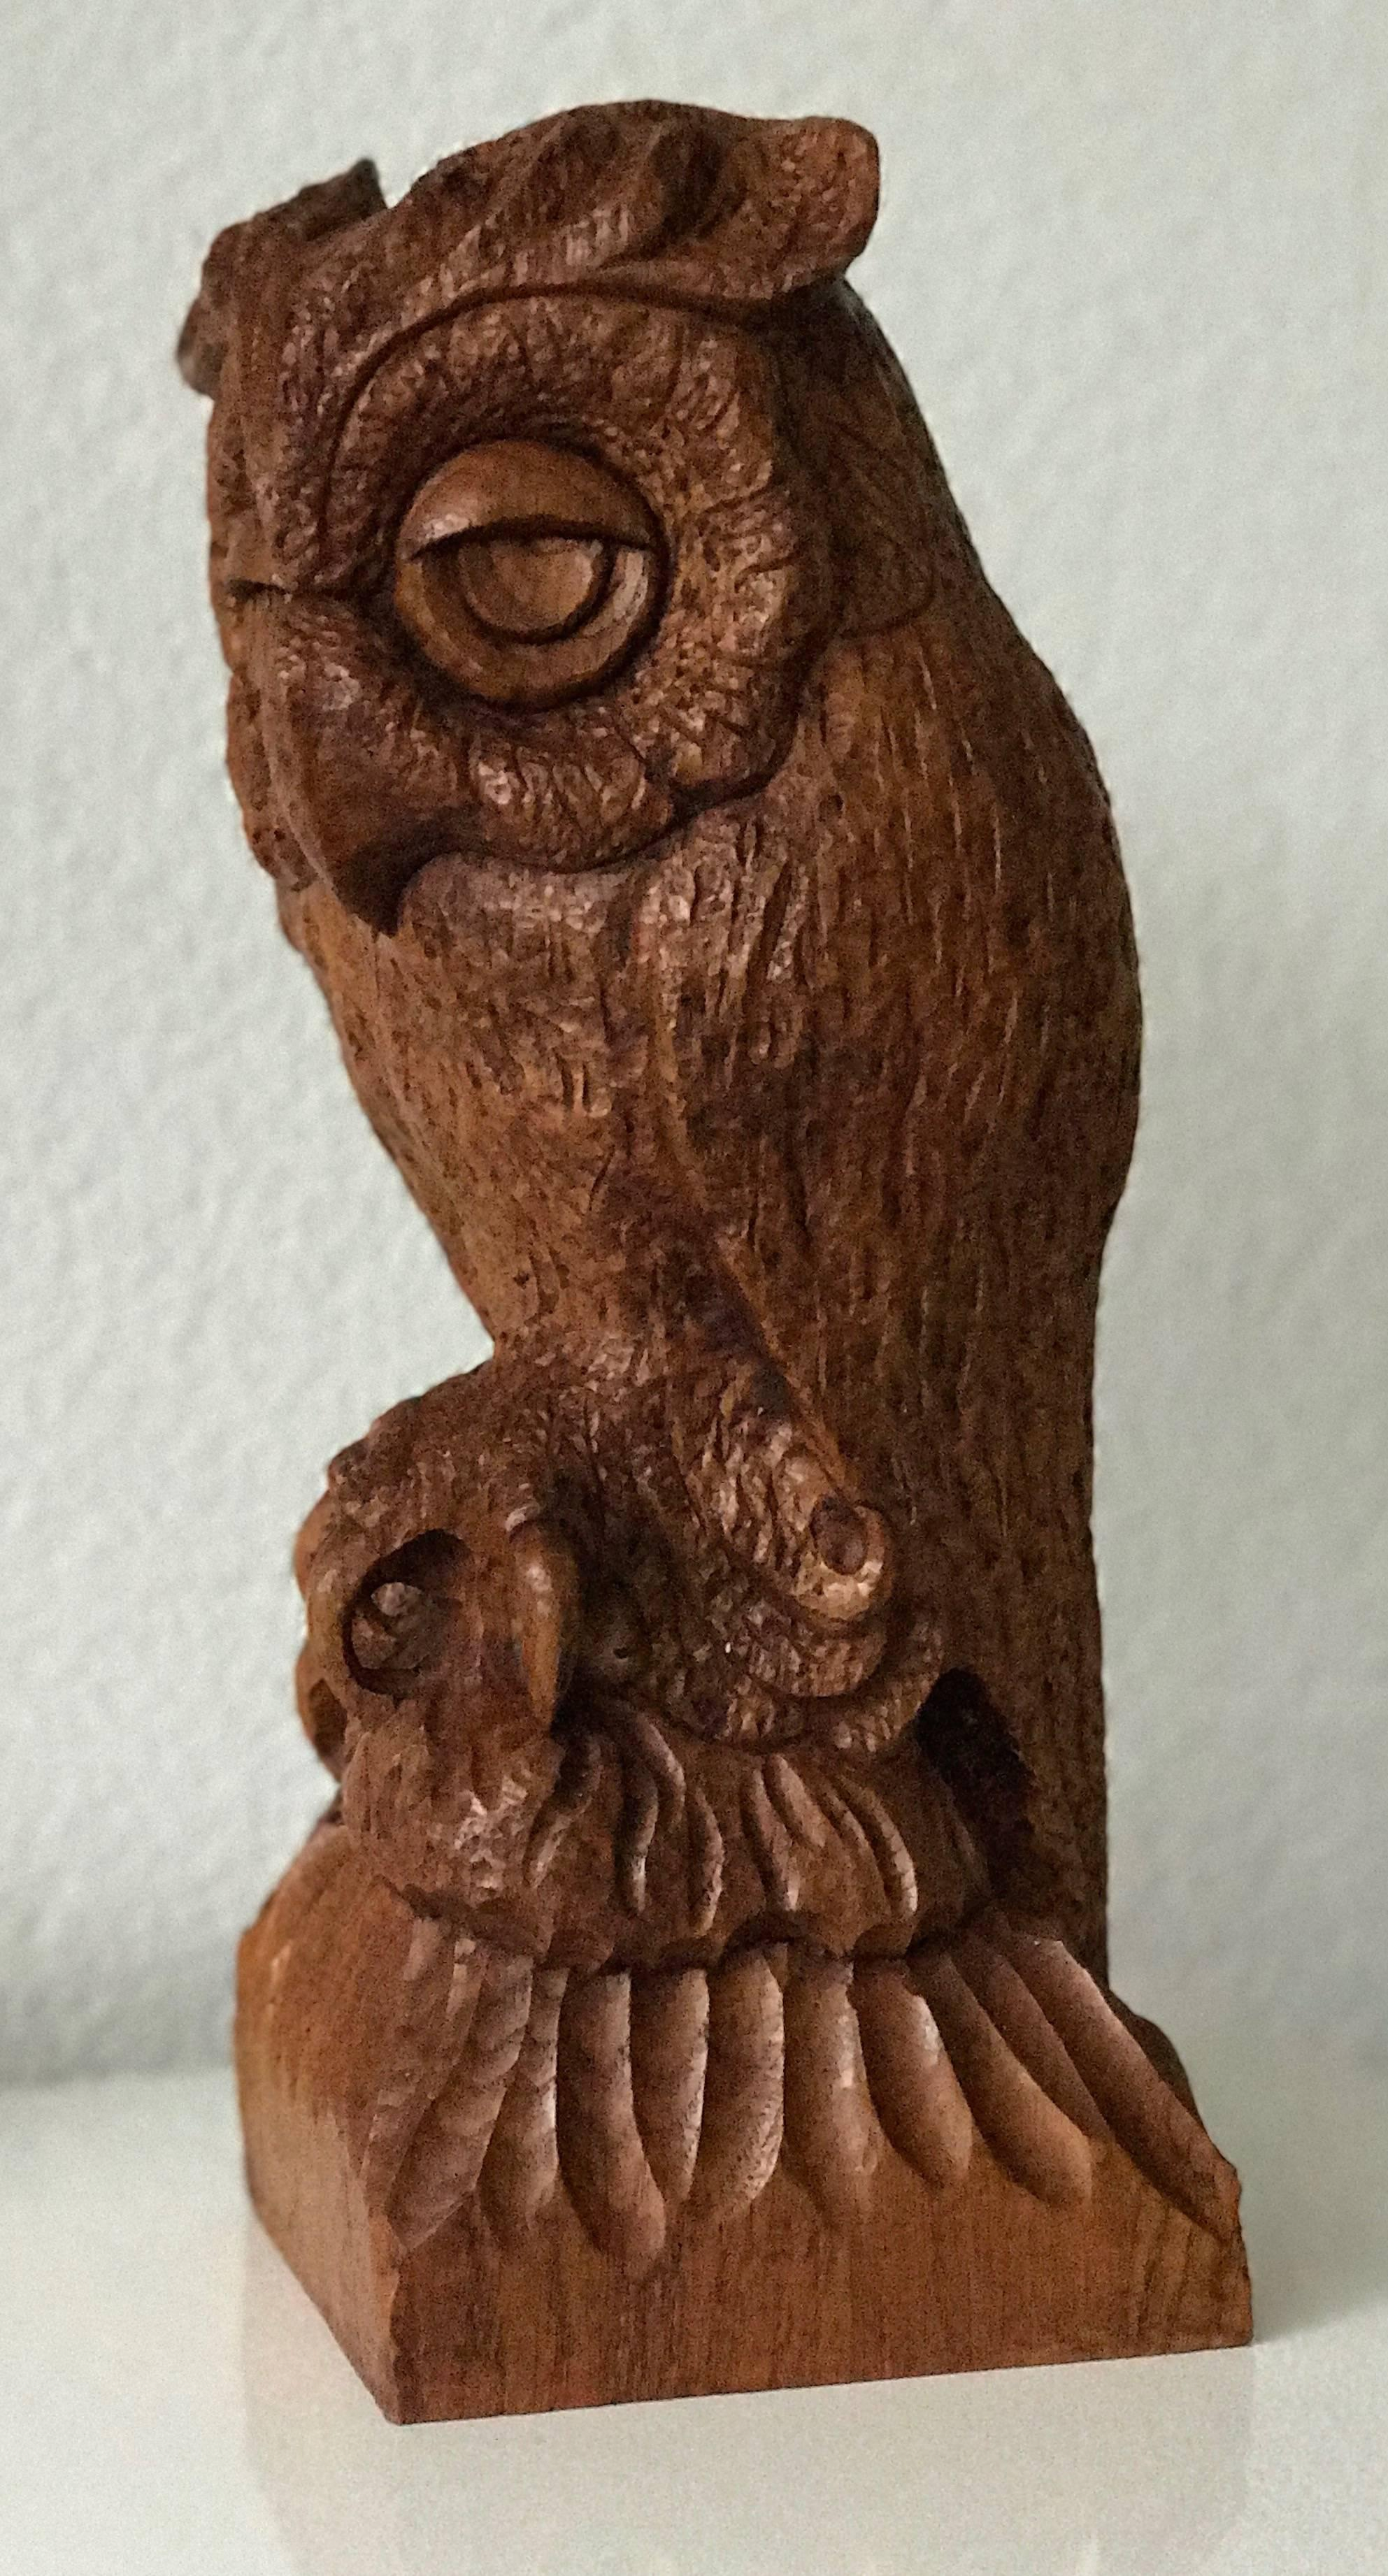 Owl chainsaw carving rob beckinsale flickr